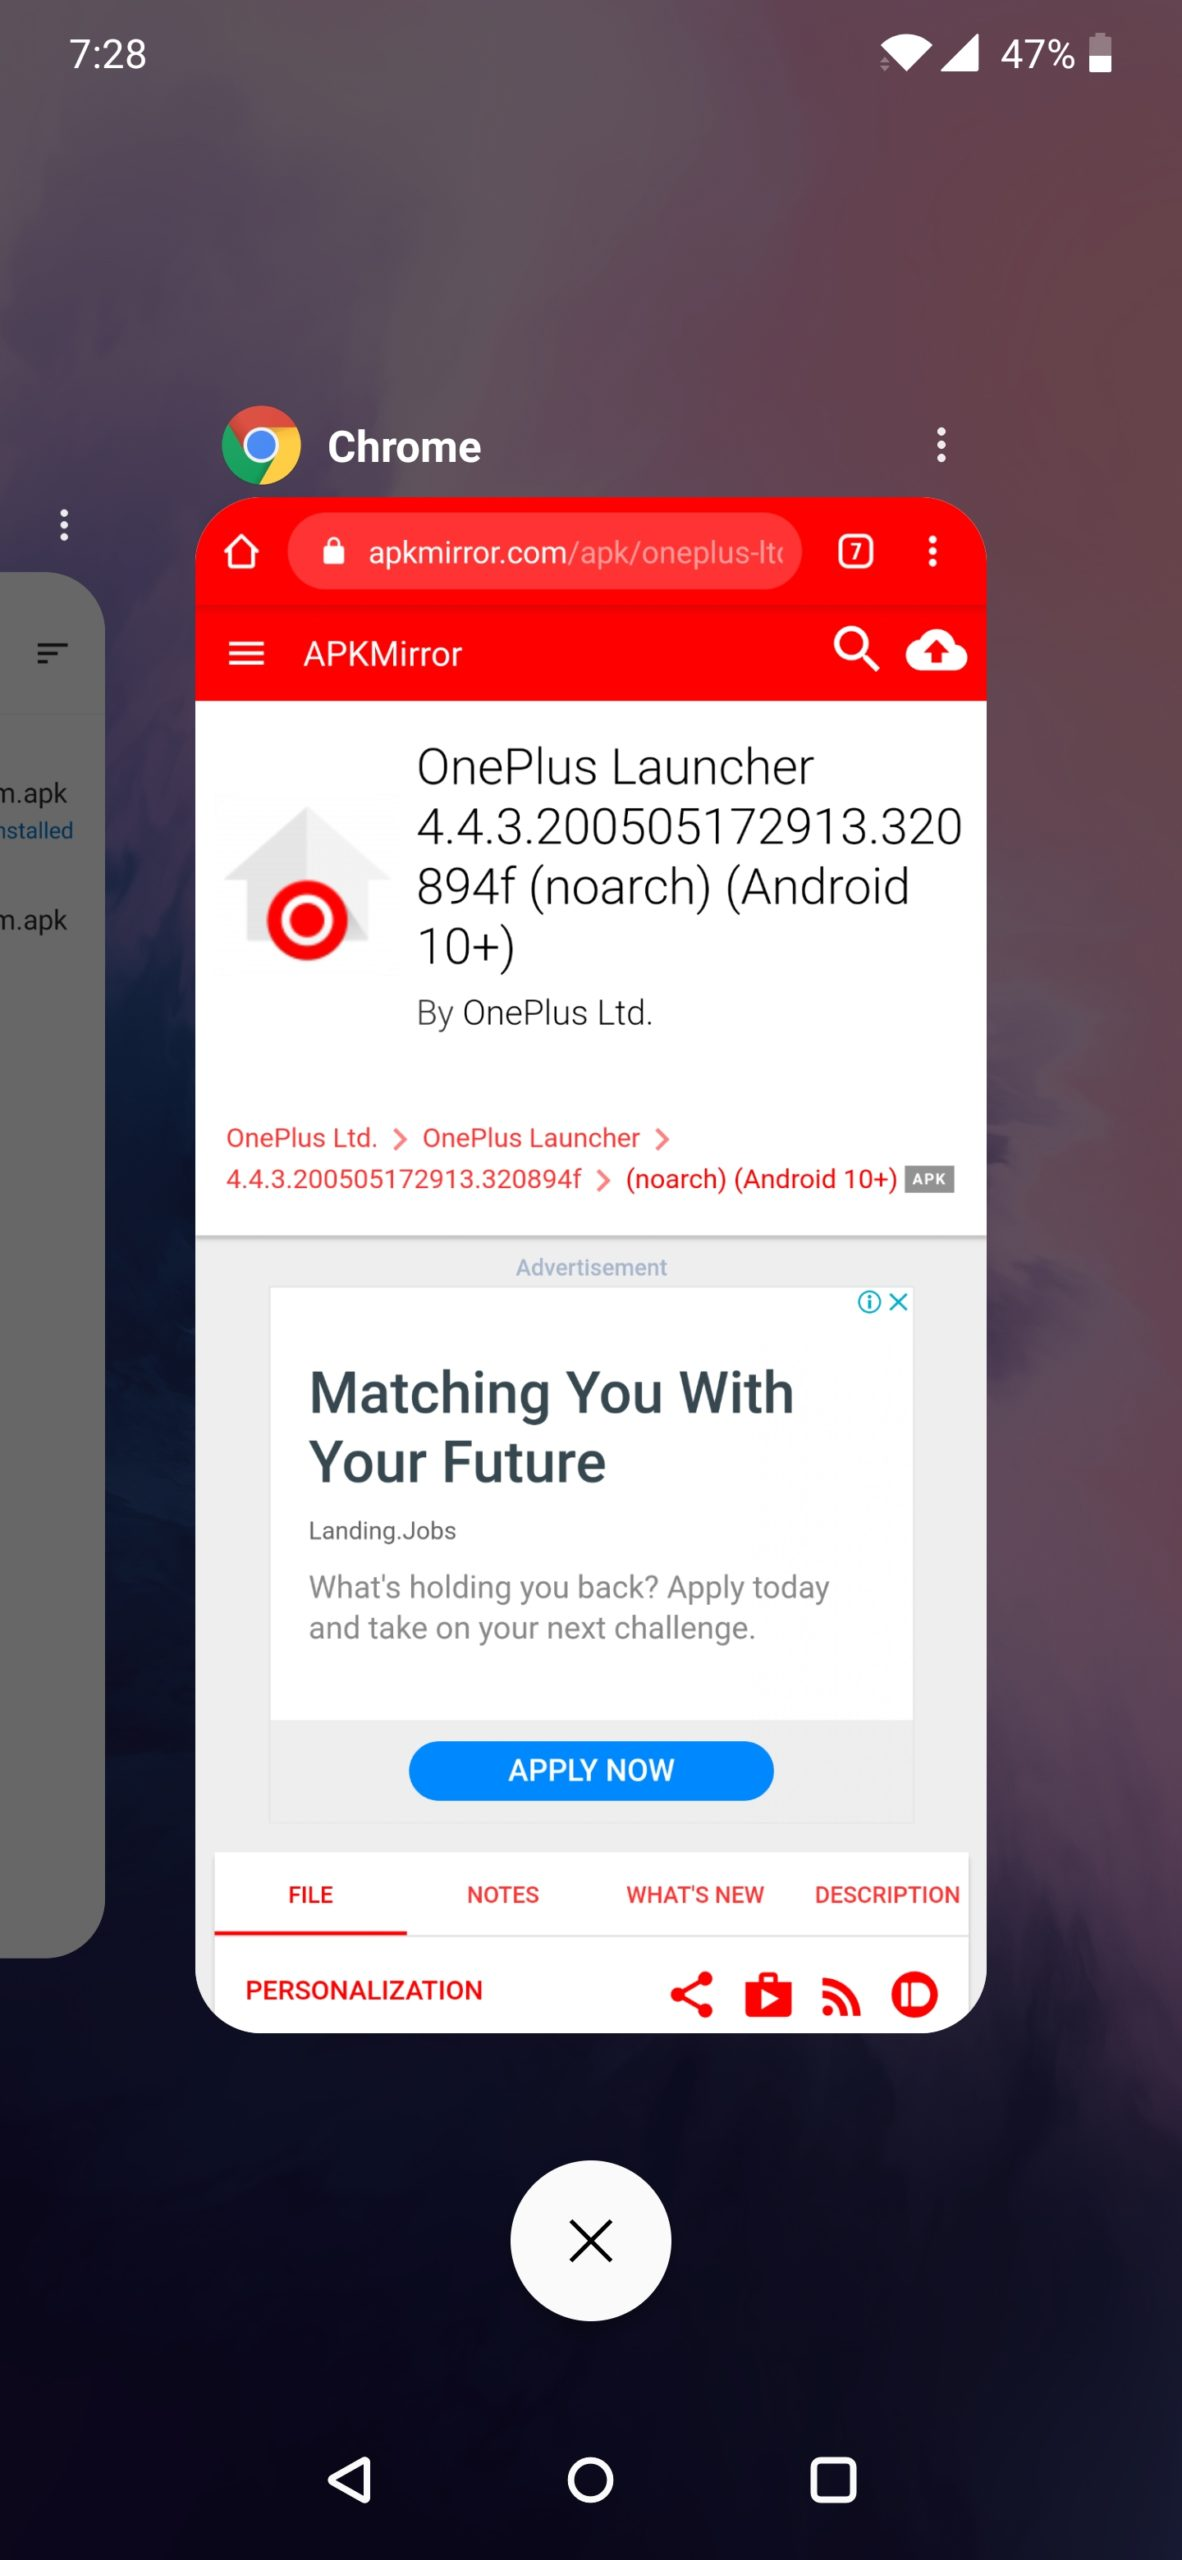 oneplus-launcher-app-switcher-old